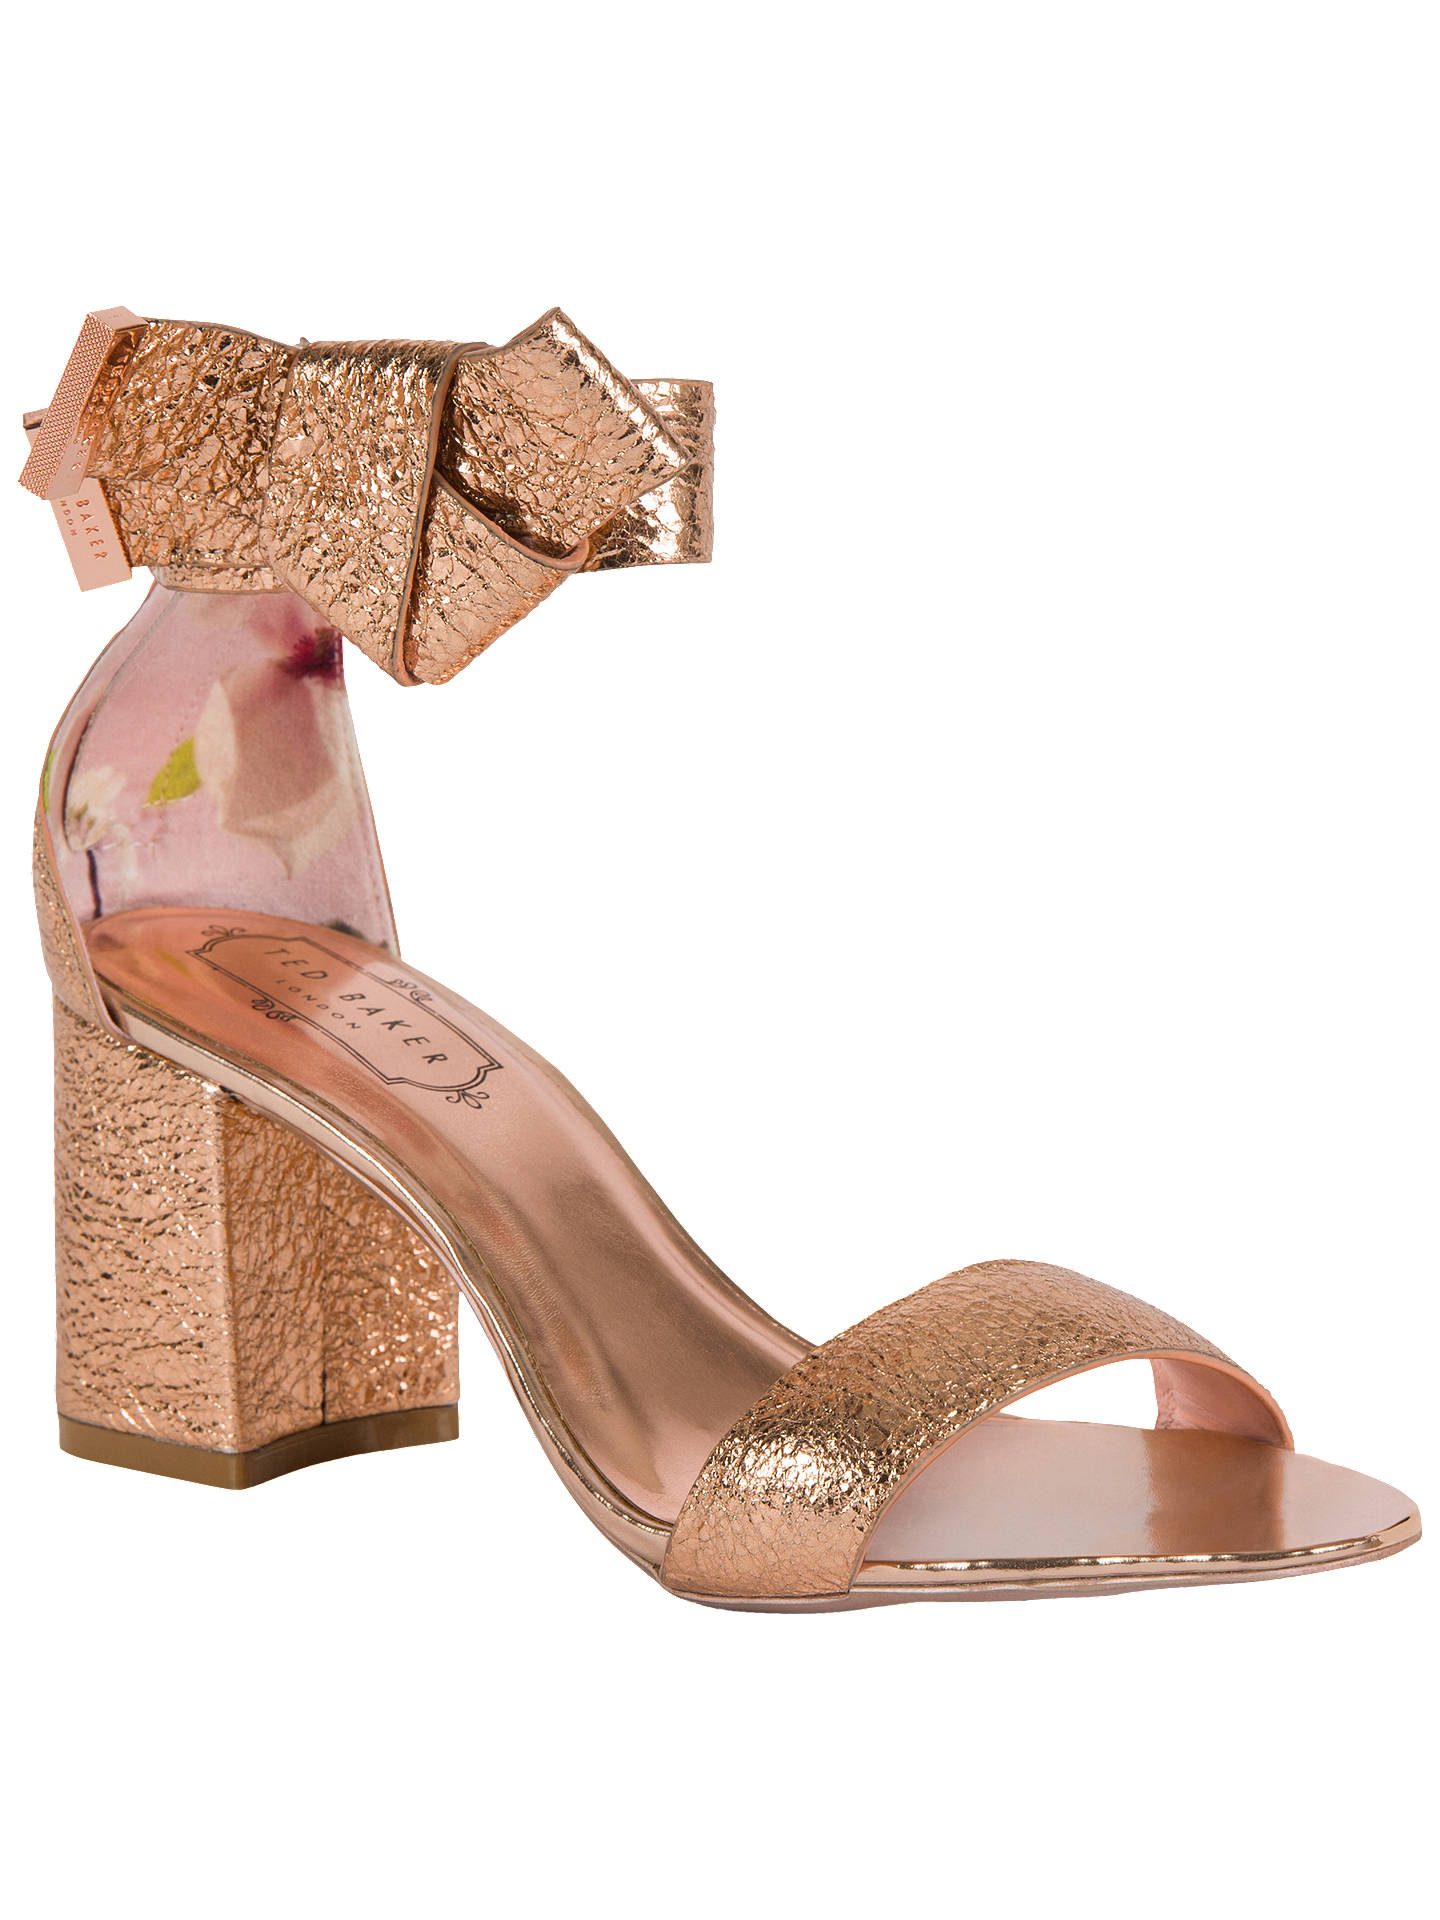 bcec55a0a Buy Ted Baker Kerria Block Heeled Sandals